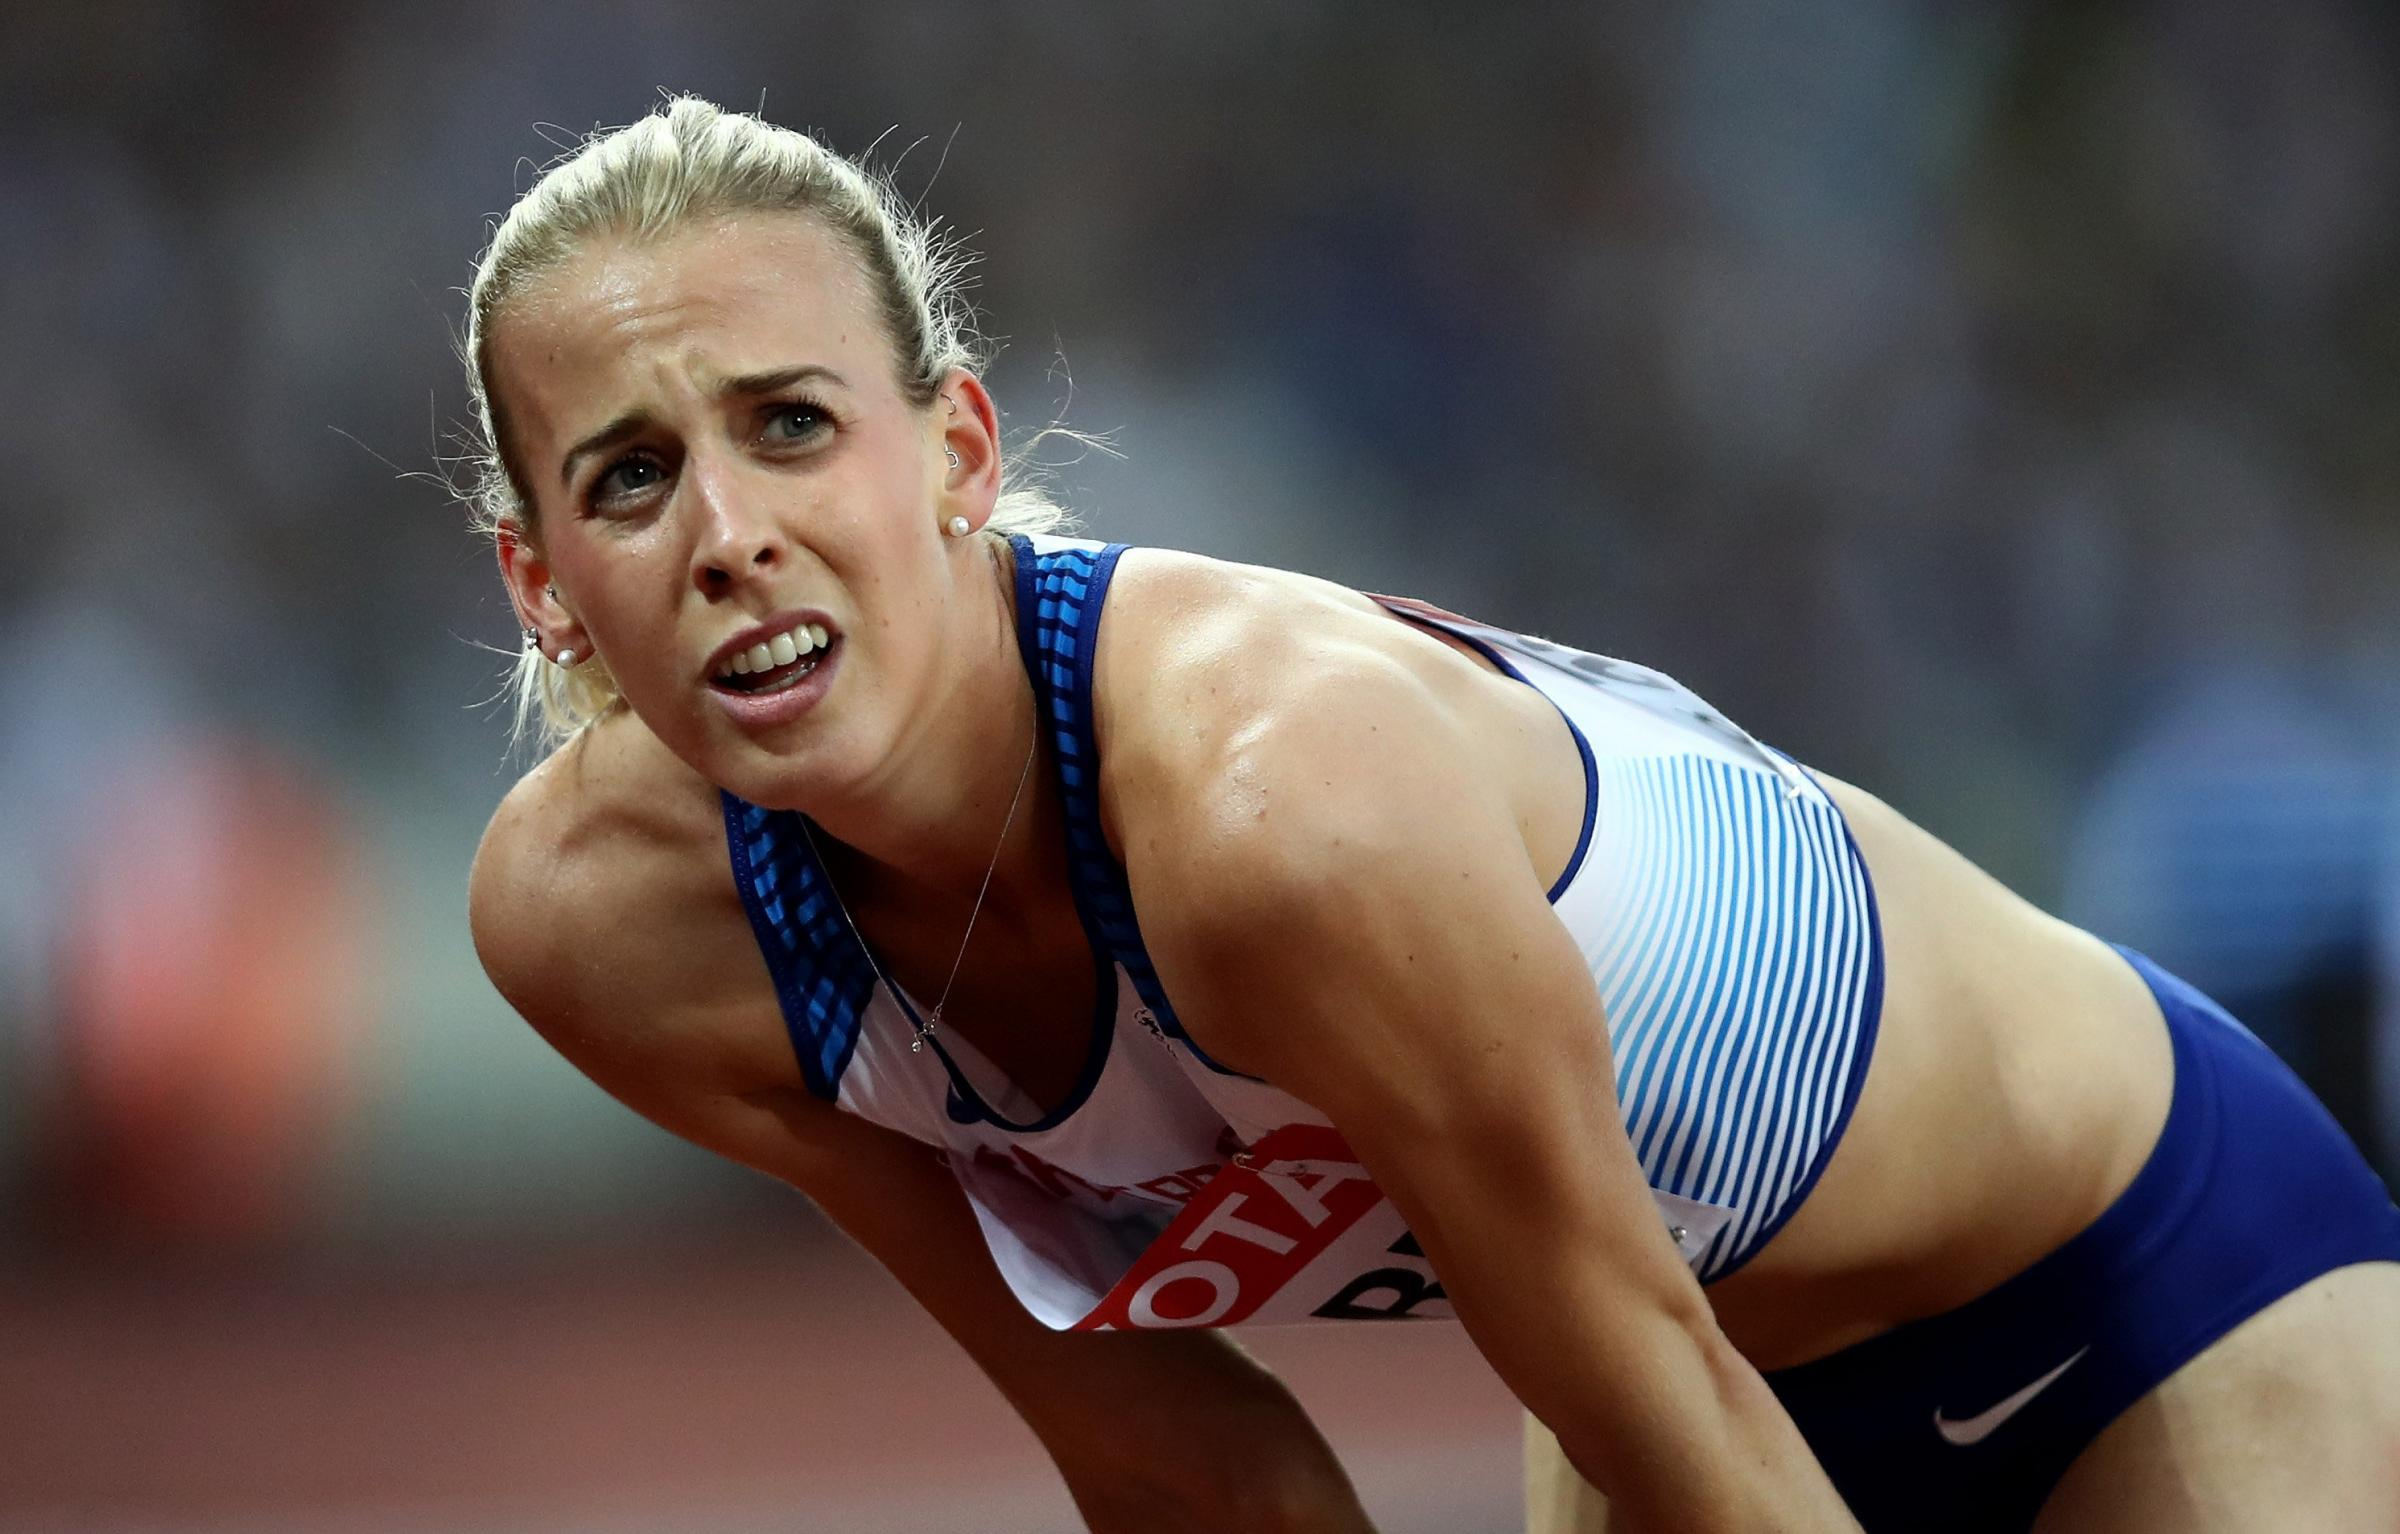 Lynsey Sharp complained about her Scotland team-mate Laura Muir being added to the 800m starting line-up in Birmingham last weekend